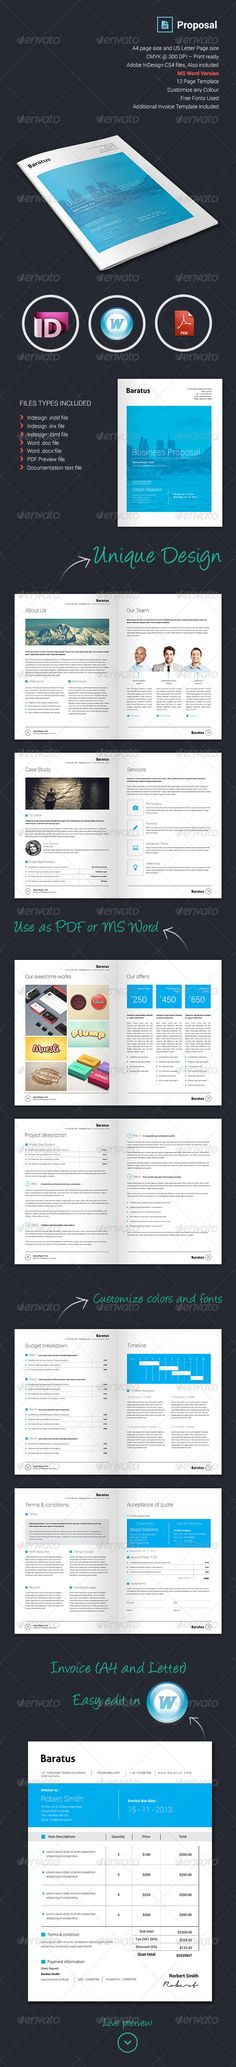 Proposal Proposals, Proposal templates and Font logo - best proposal templates